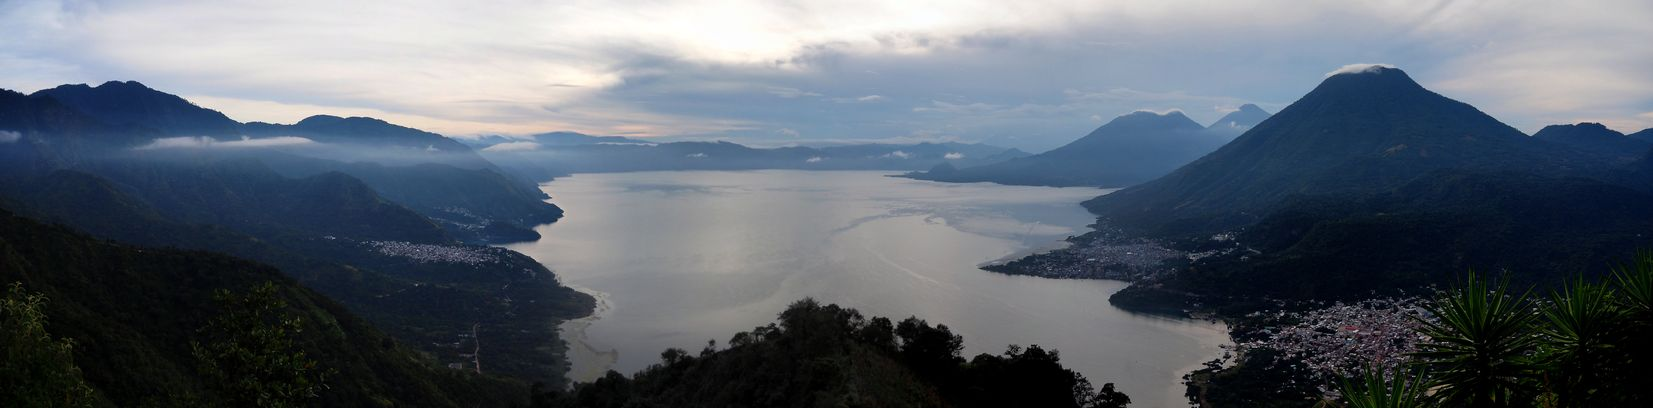 guatemala-20181104-1365-panoramique-lac-atitlan-indian-nose.jpg